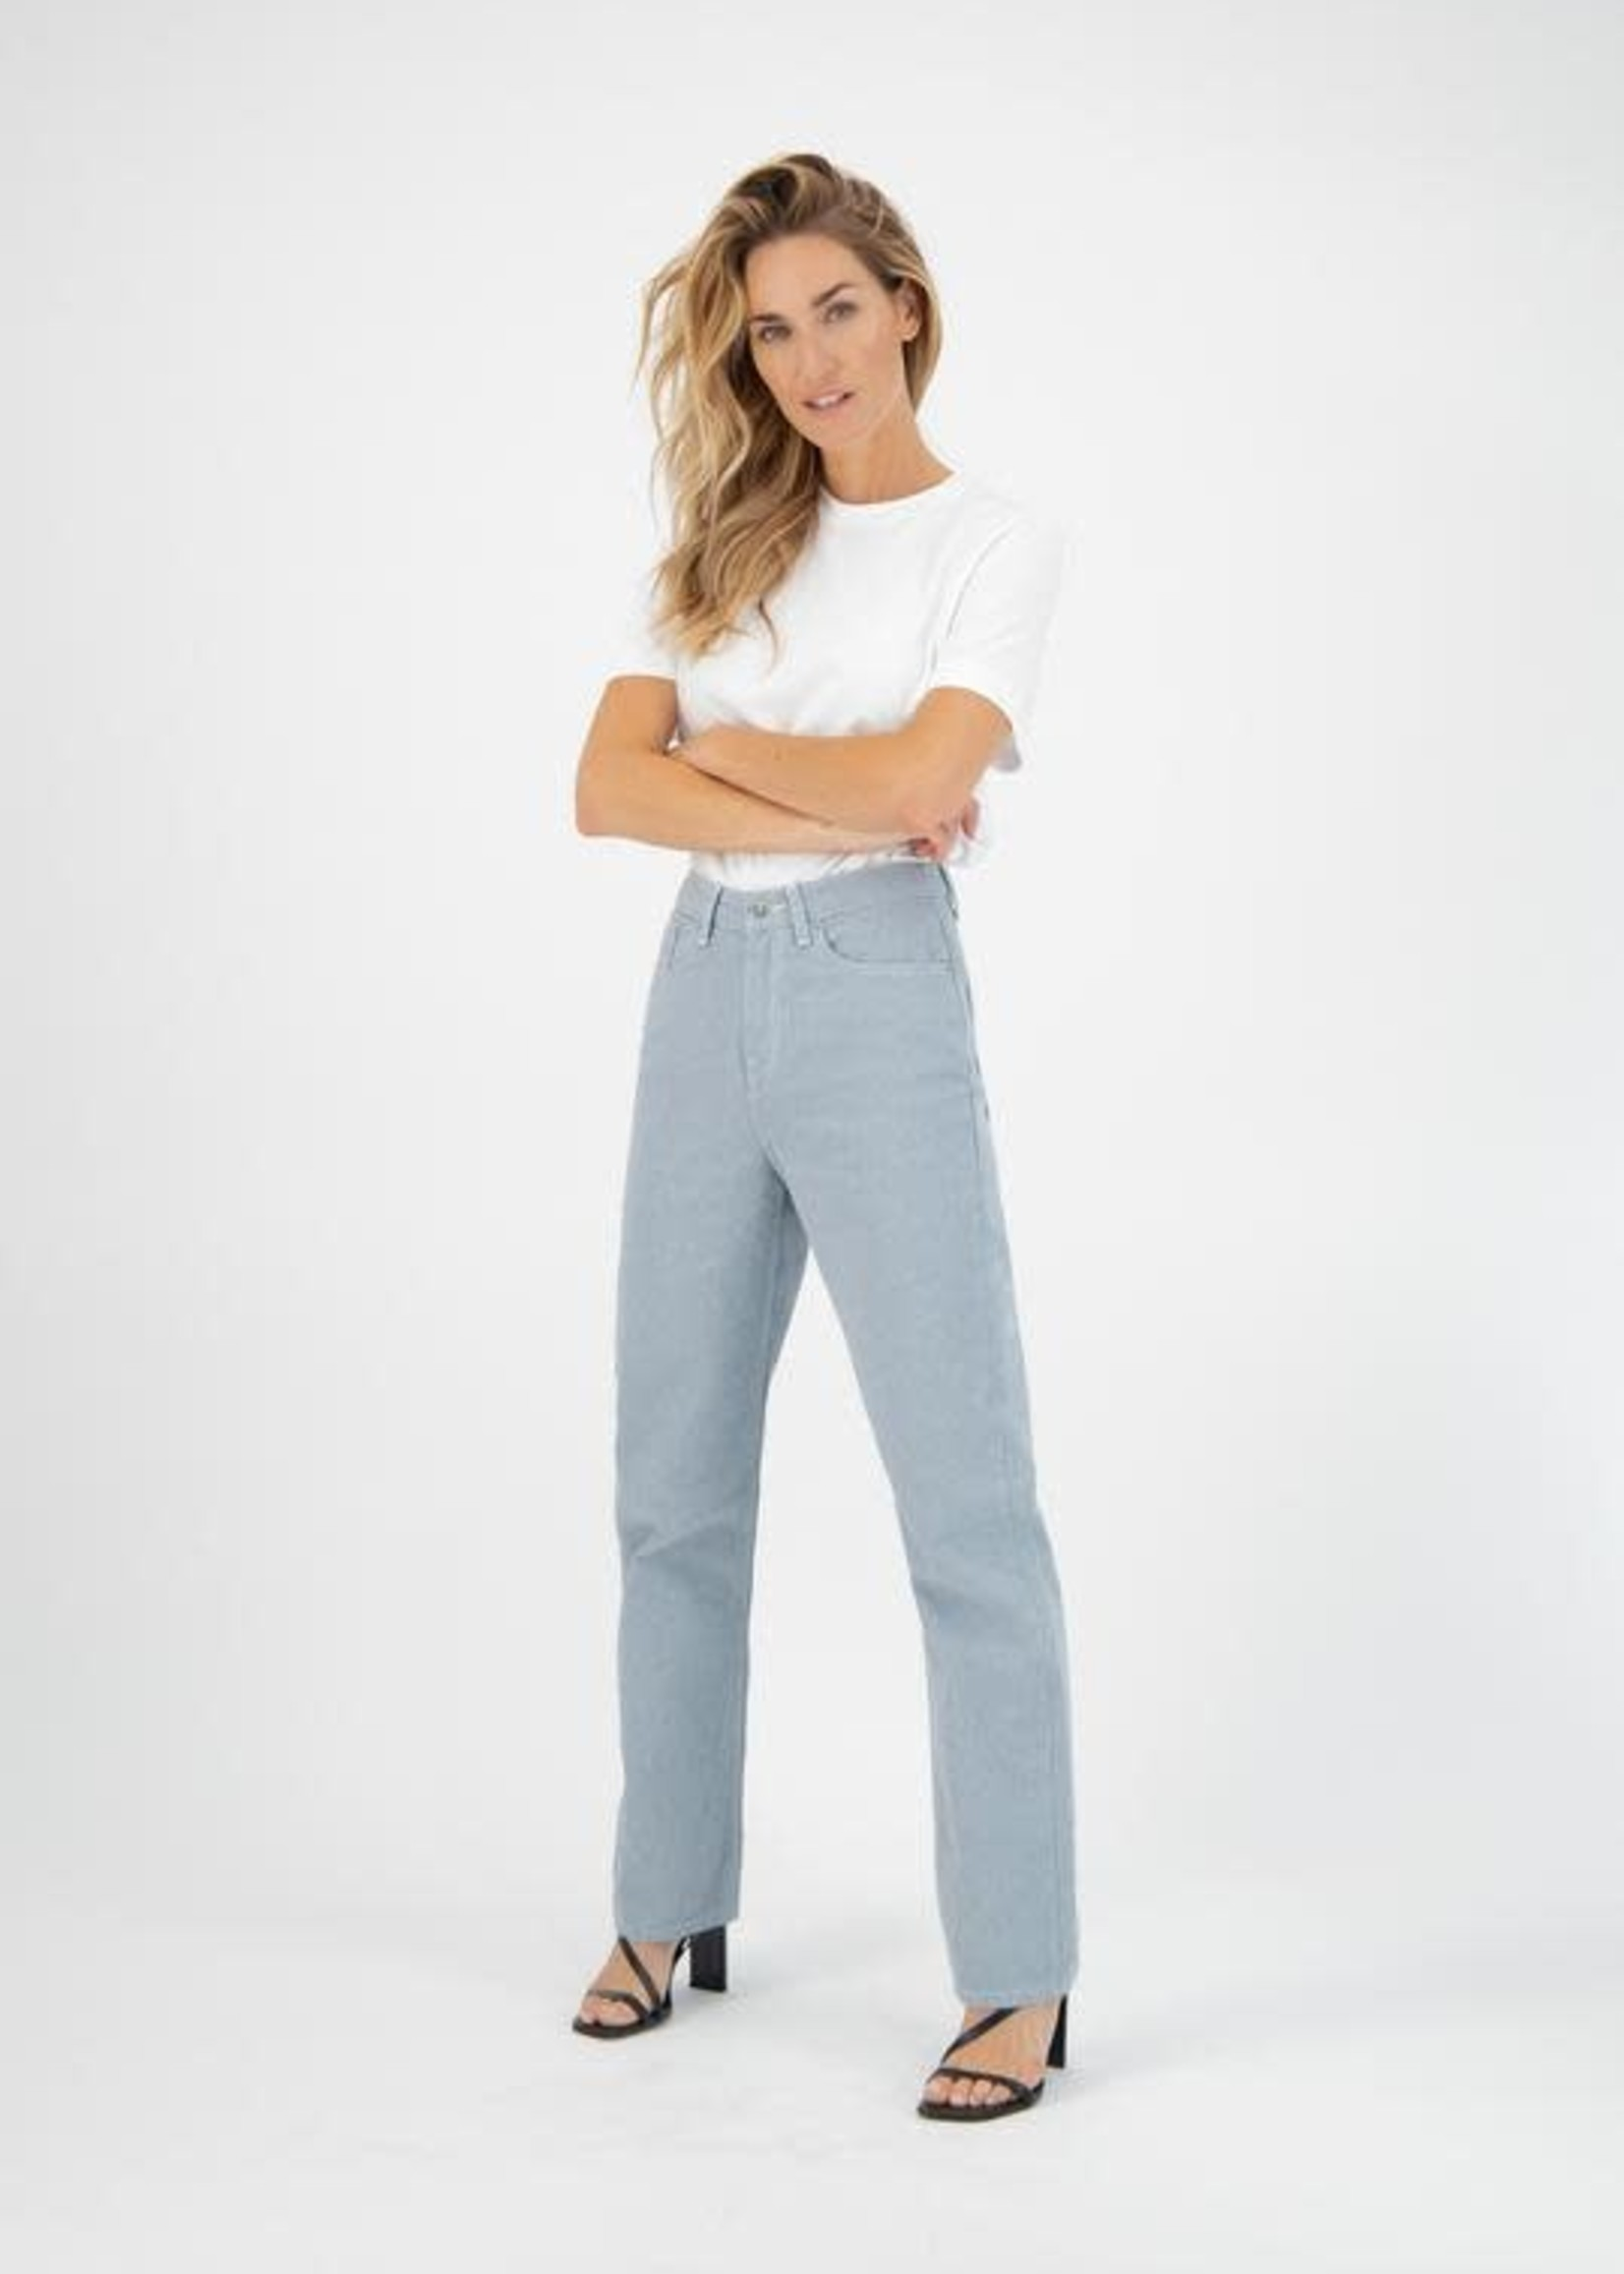 MUD Jeans Mud  Jeans - Relax Rose - Undyed